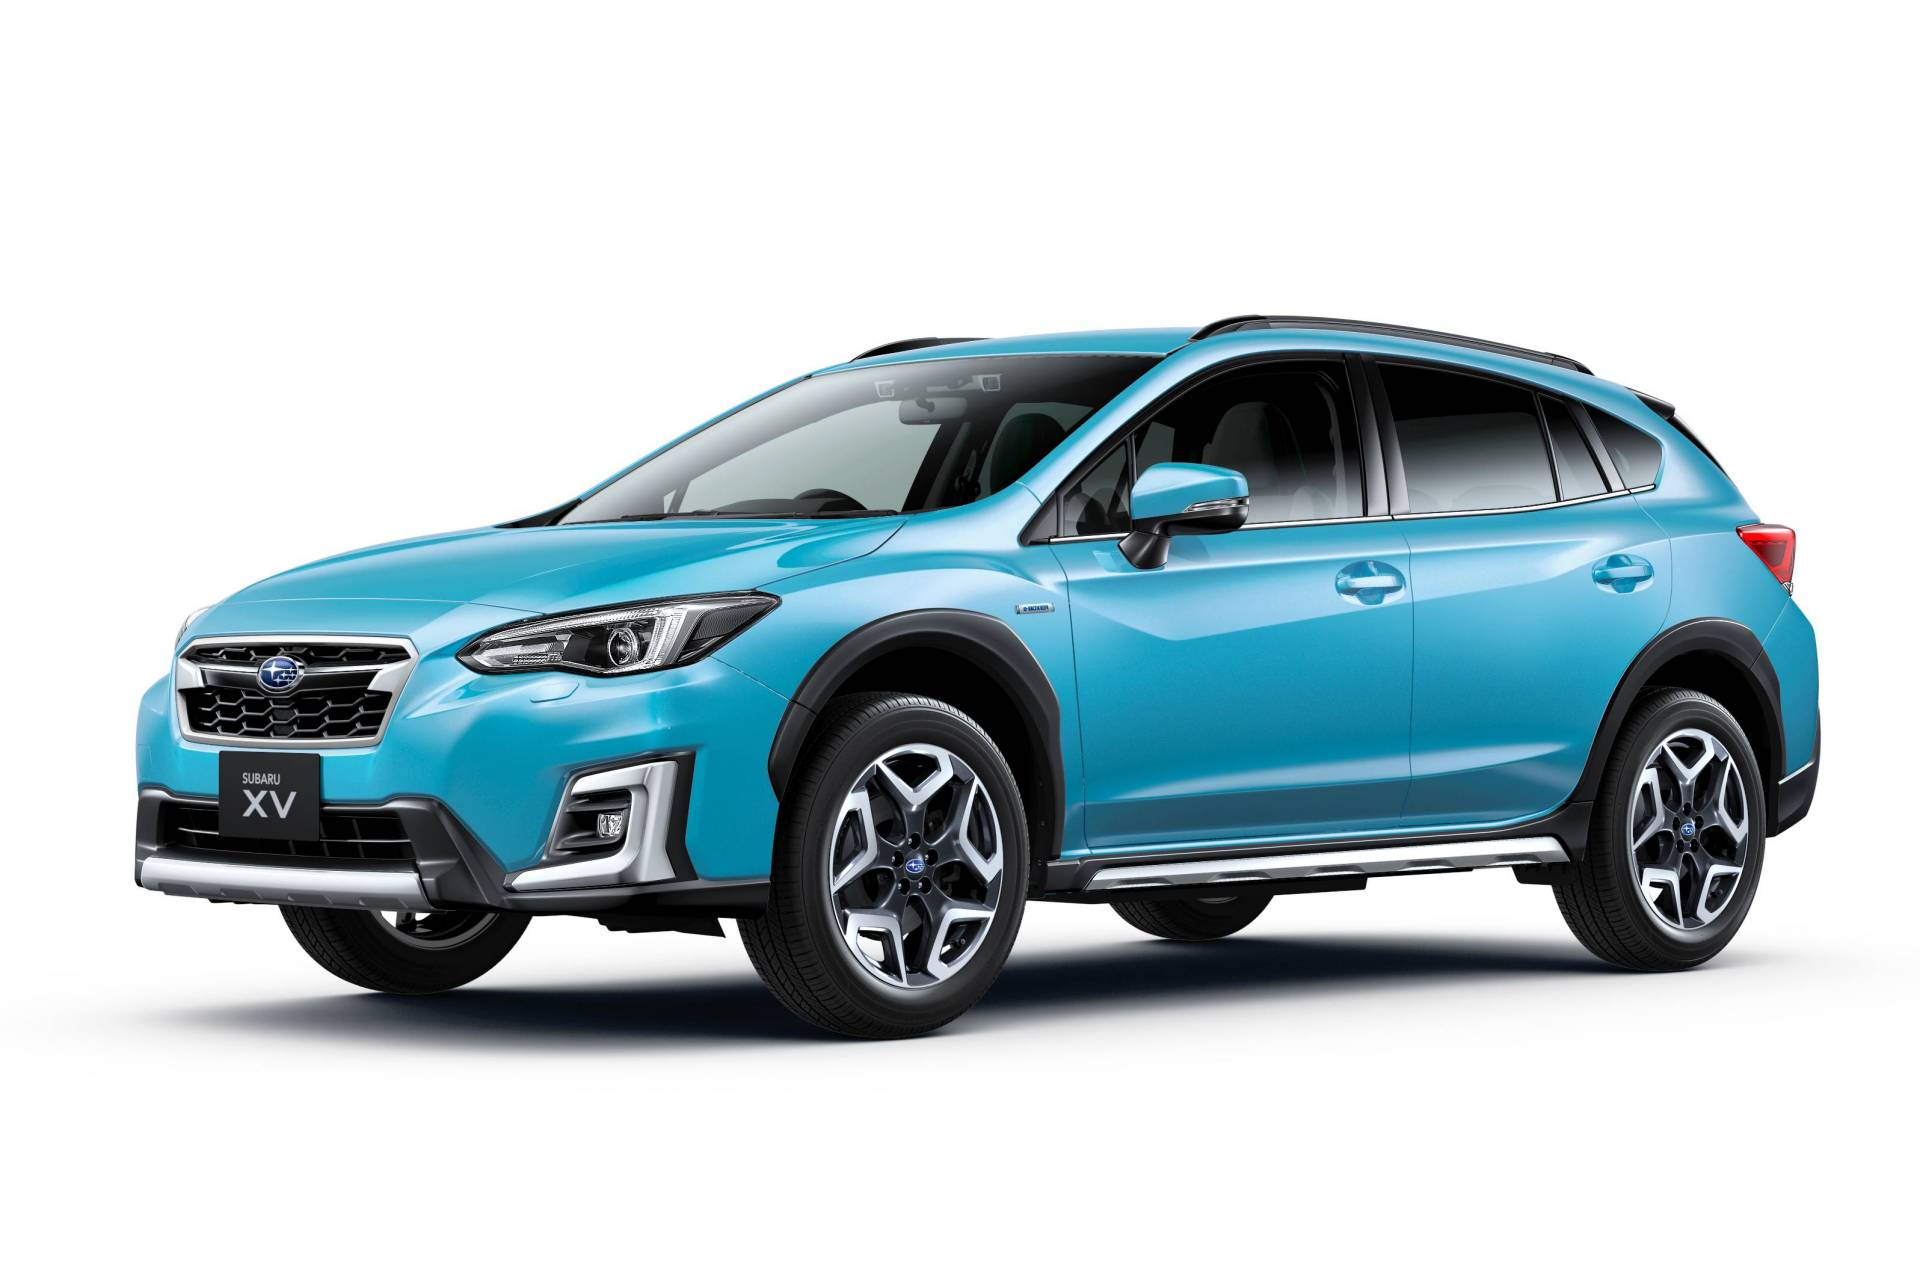 6c4de31d-subaru-xv-advance